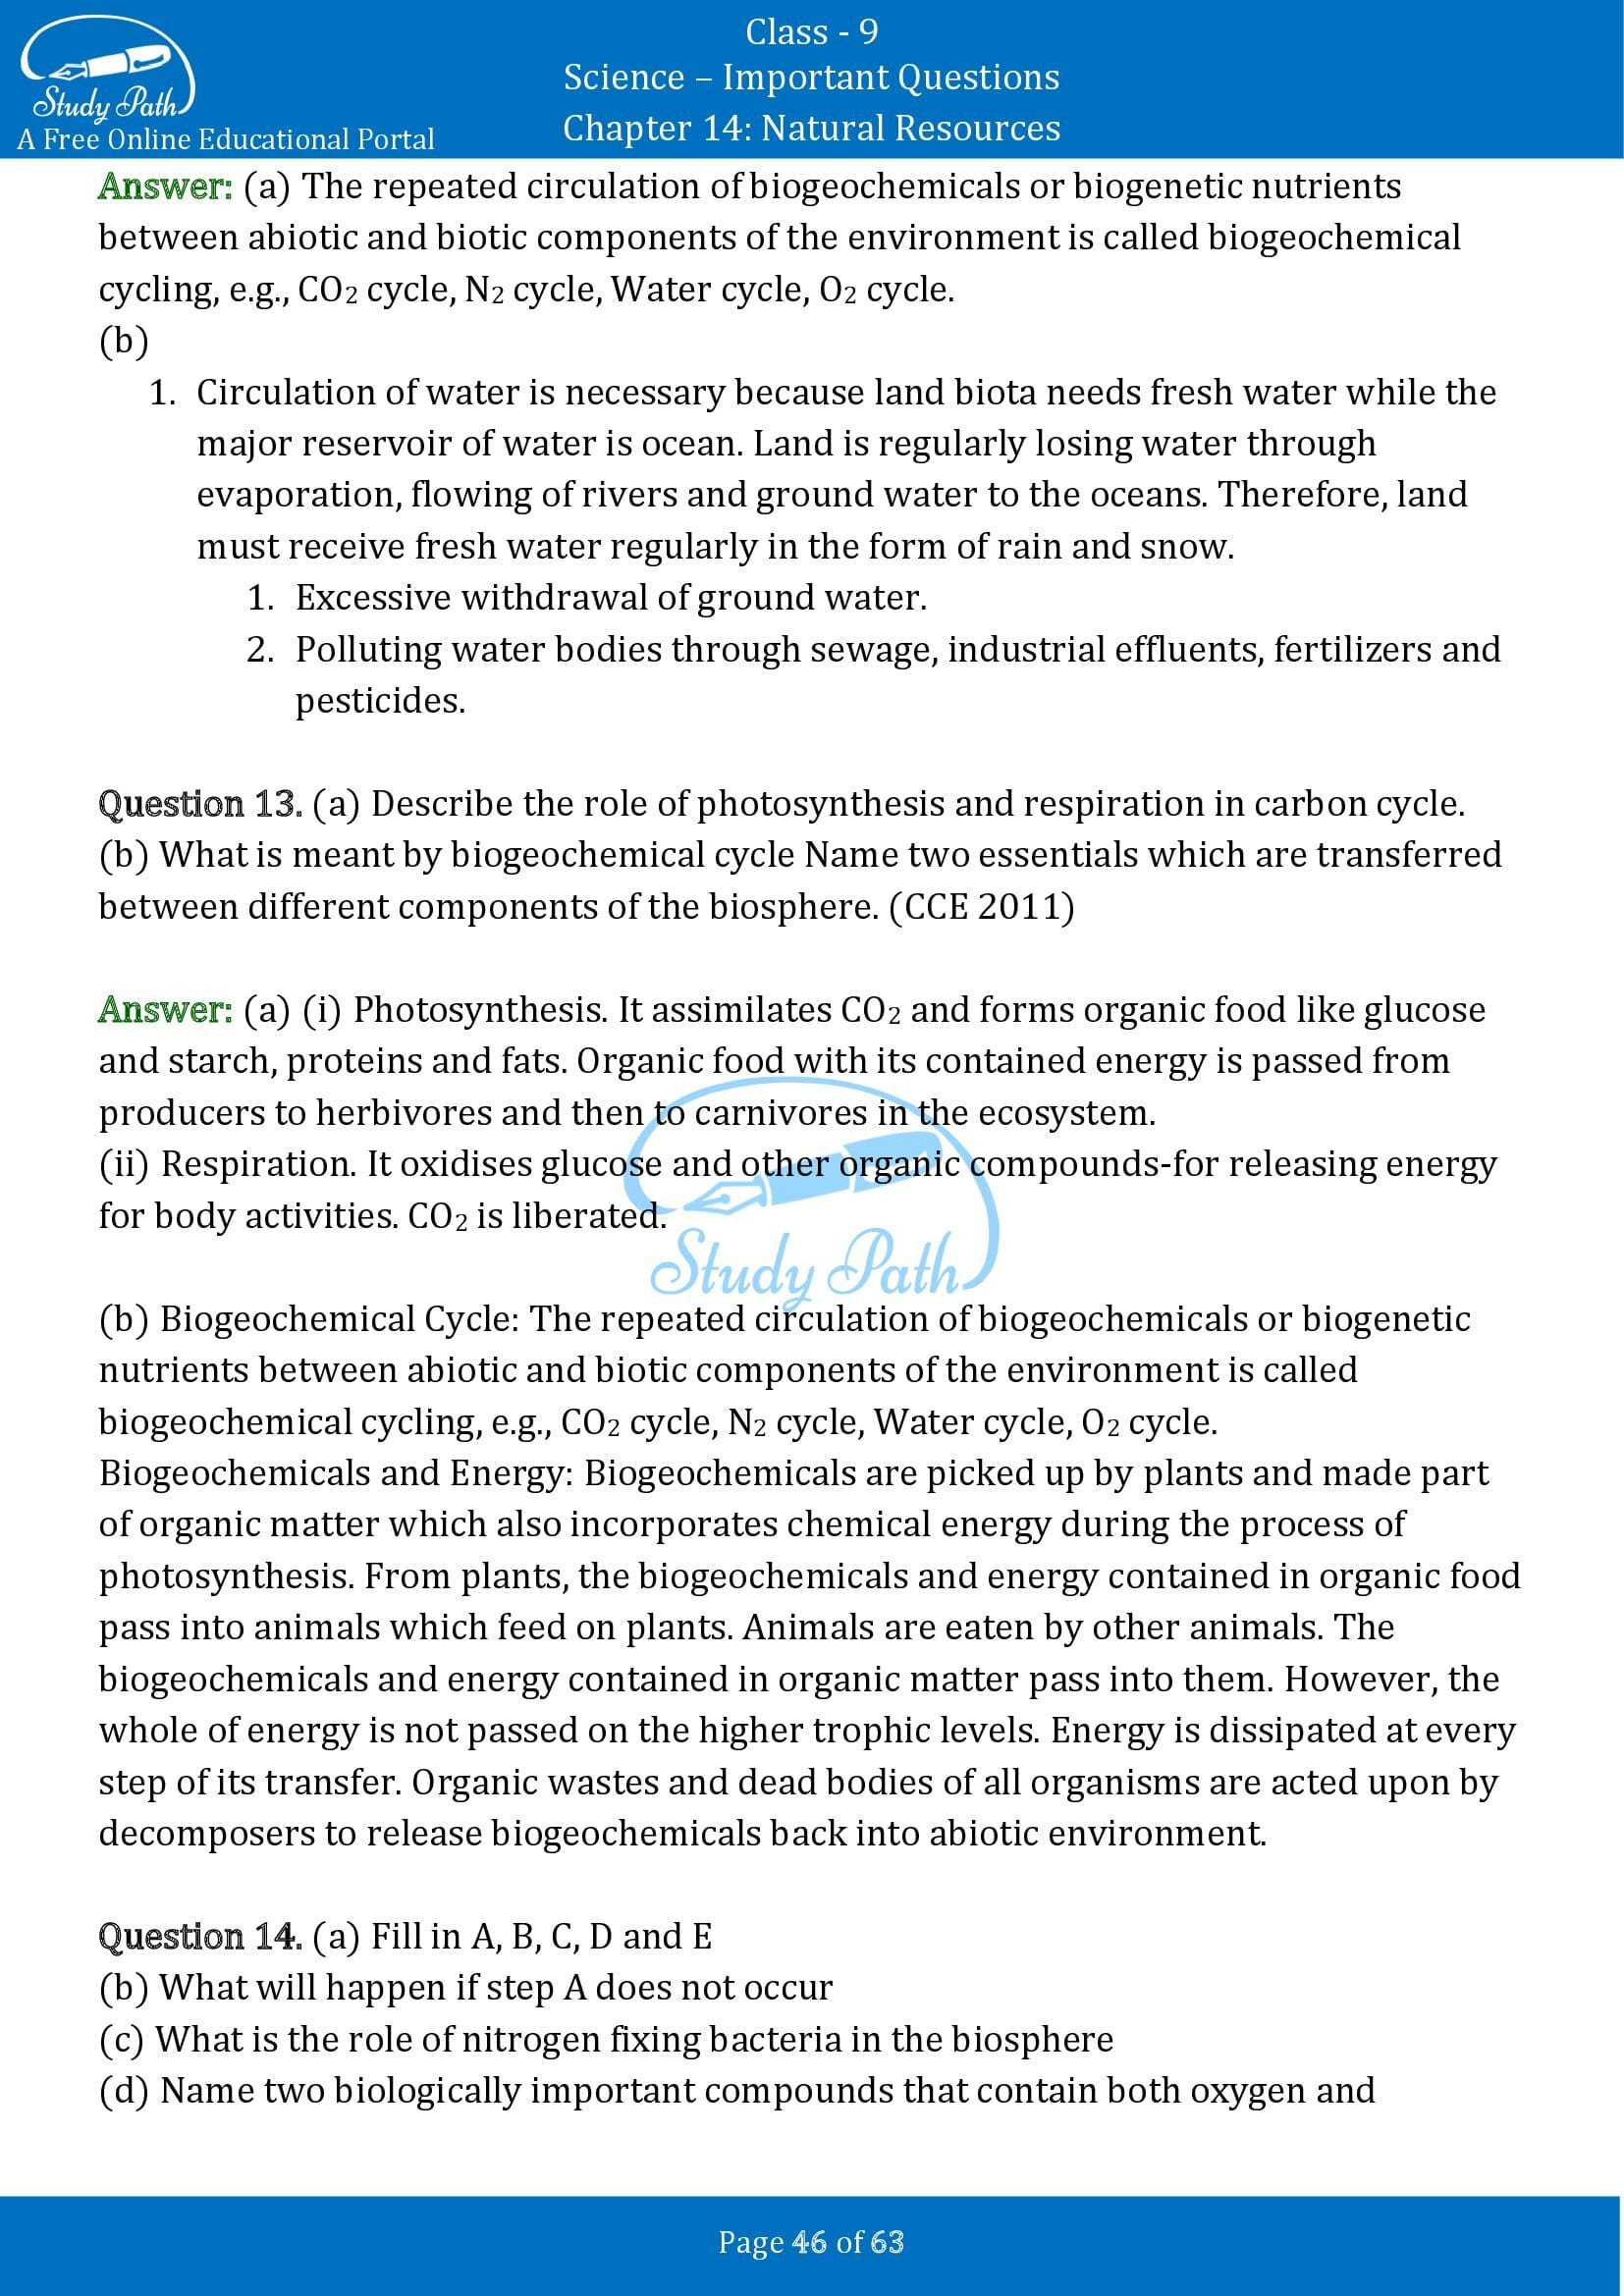 Important Questions for Class 9 Science Chapter 14 Natural Resources 00046